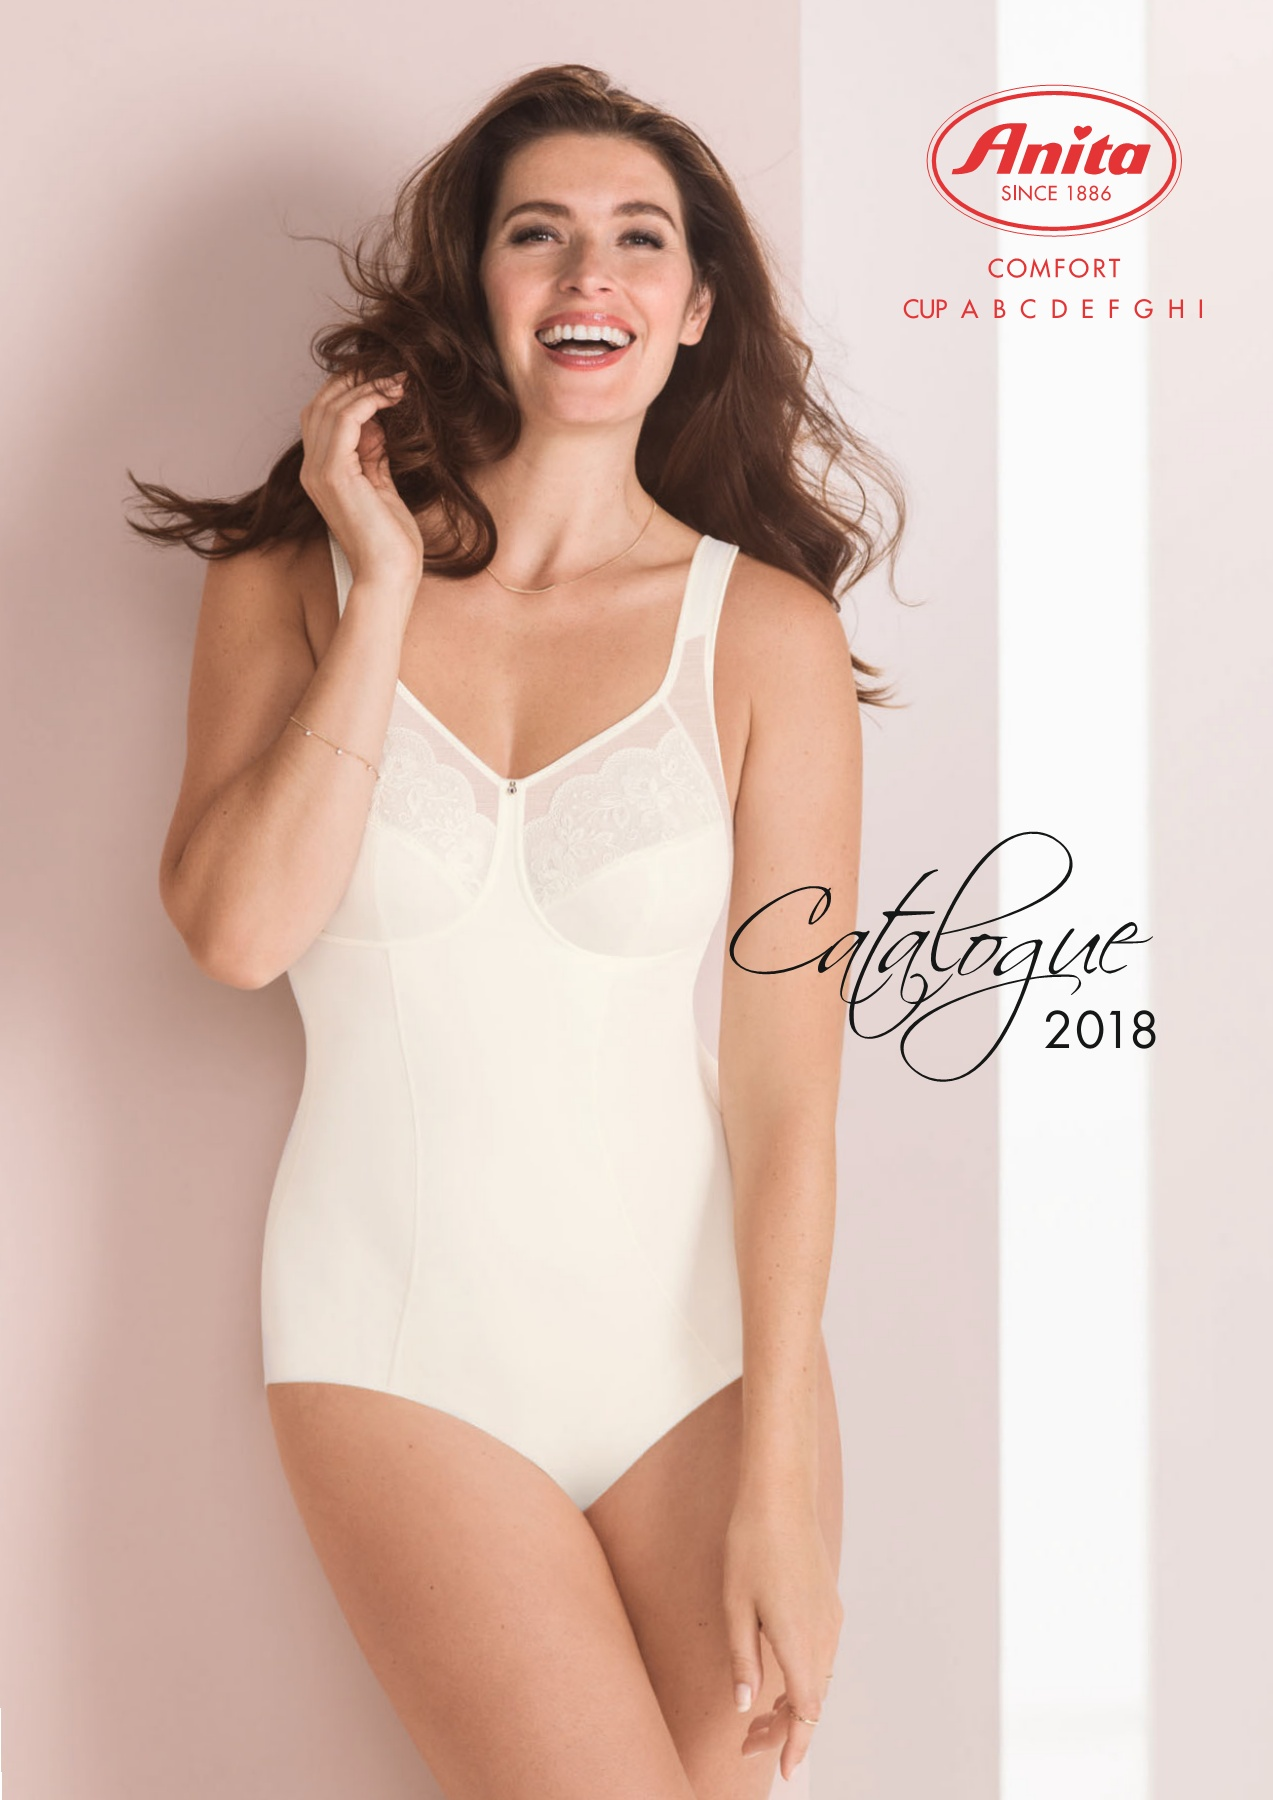 e9836fb5f9b 2018 Anita Comfort Catalog Pages 1 - 36 - Text Version